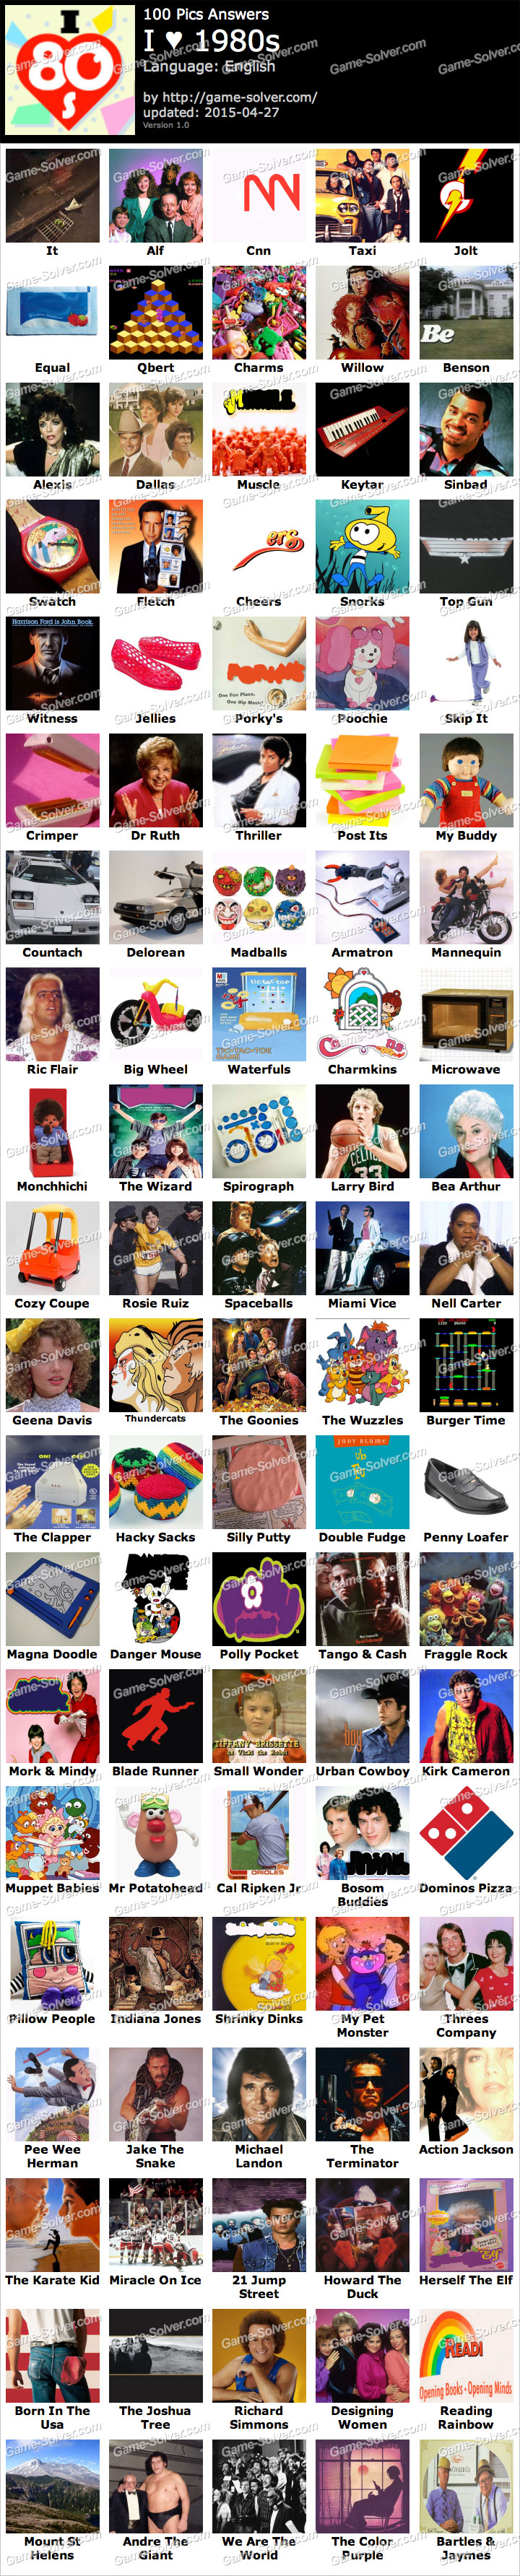 100 Pics I Love 80s Answers Games Answers